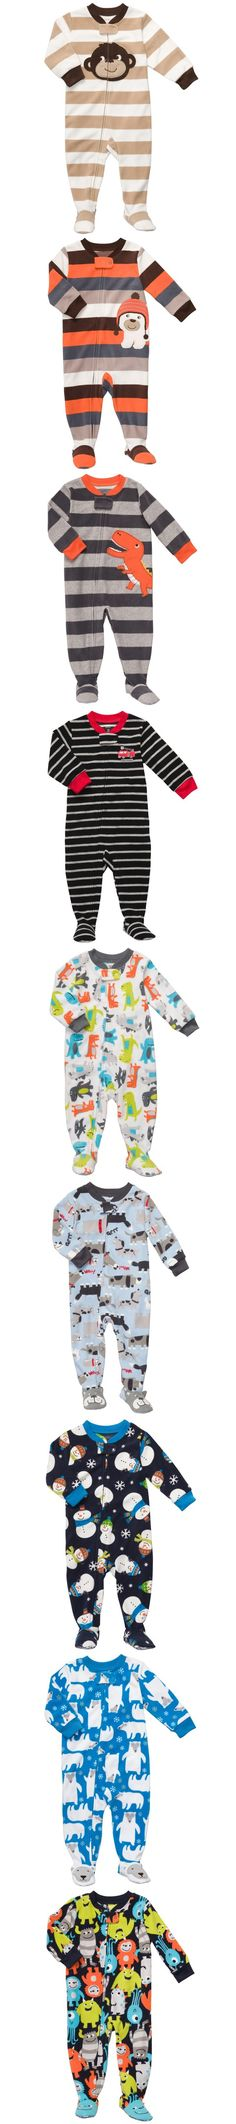 Groovy microfleece PJ's from Carter's - I need a pair.